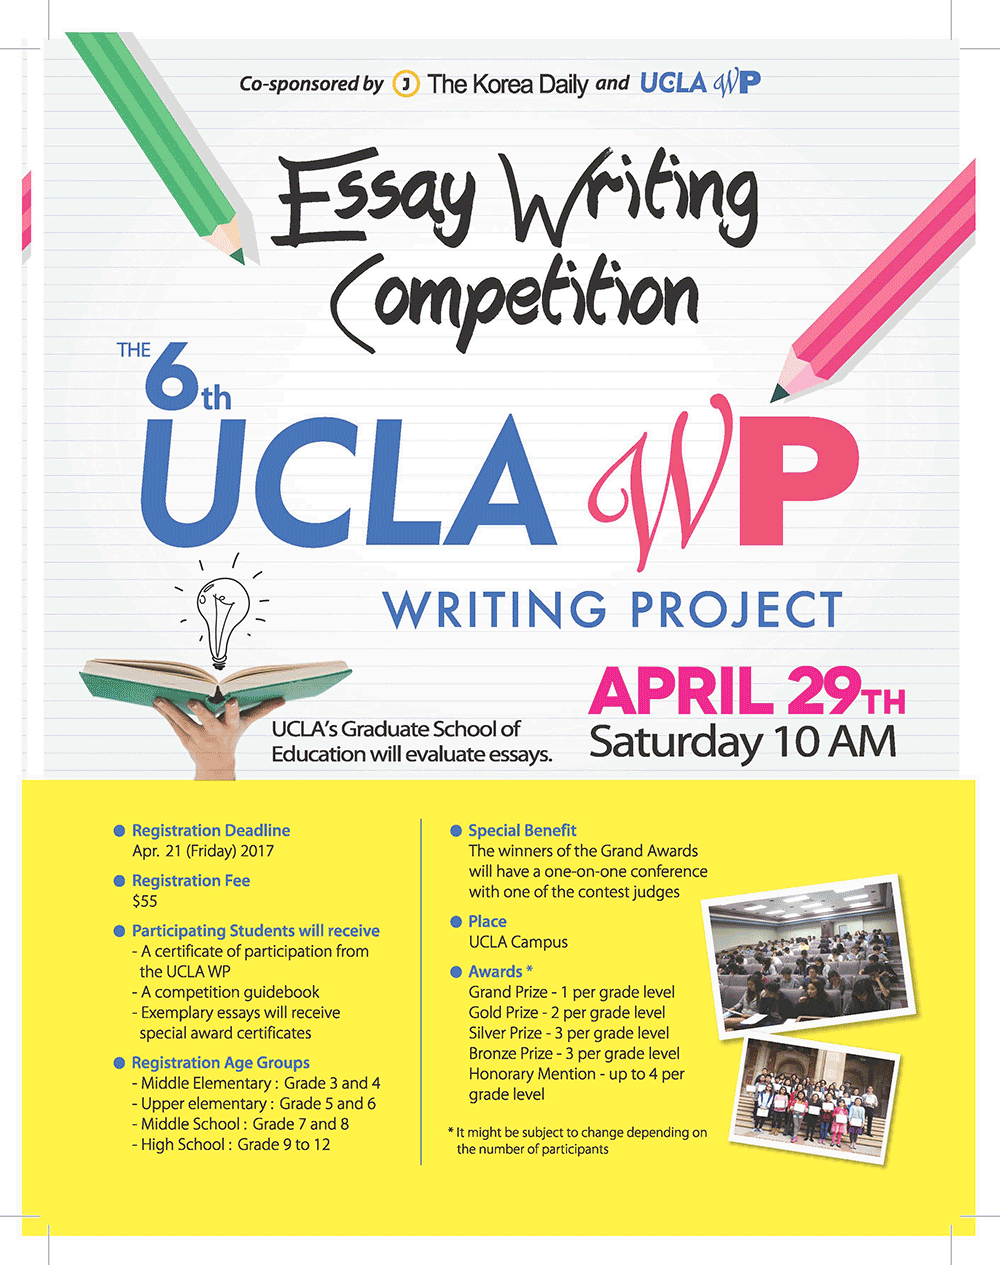 017 Uclakoreandaily Flyer Essay Contest Middle School Breathtaking Competition For Creative Writing Curriculum Online High Students Full